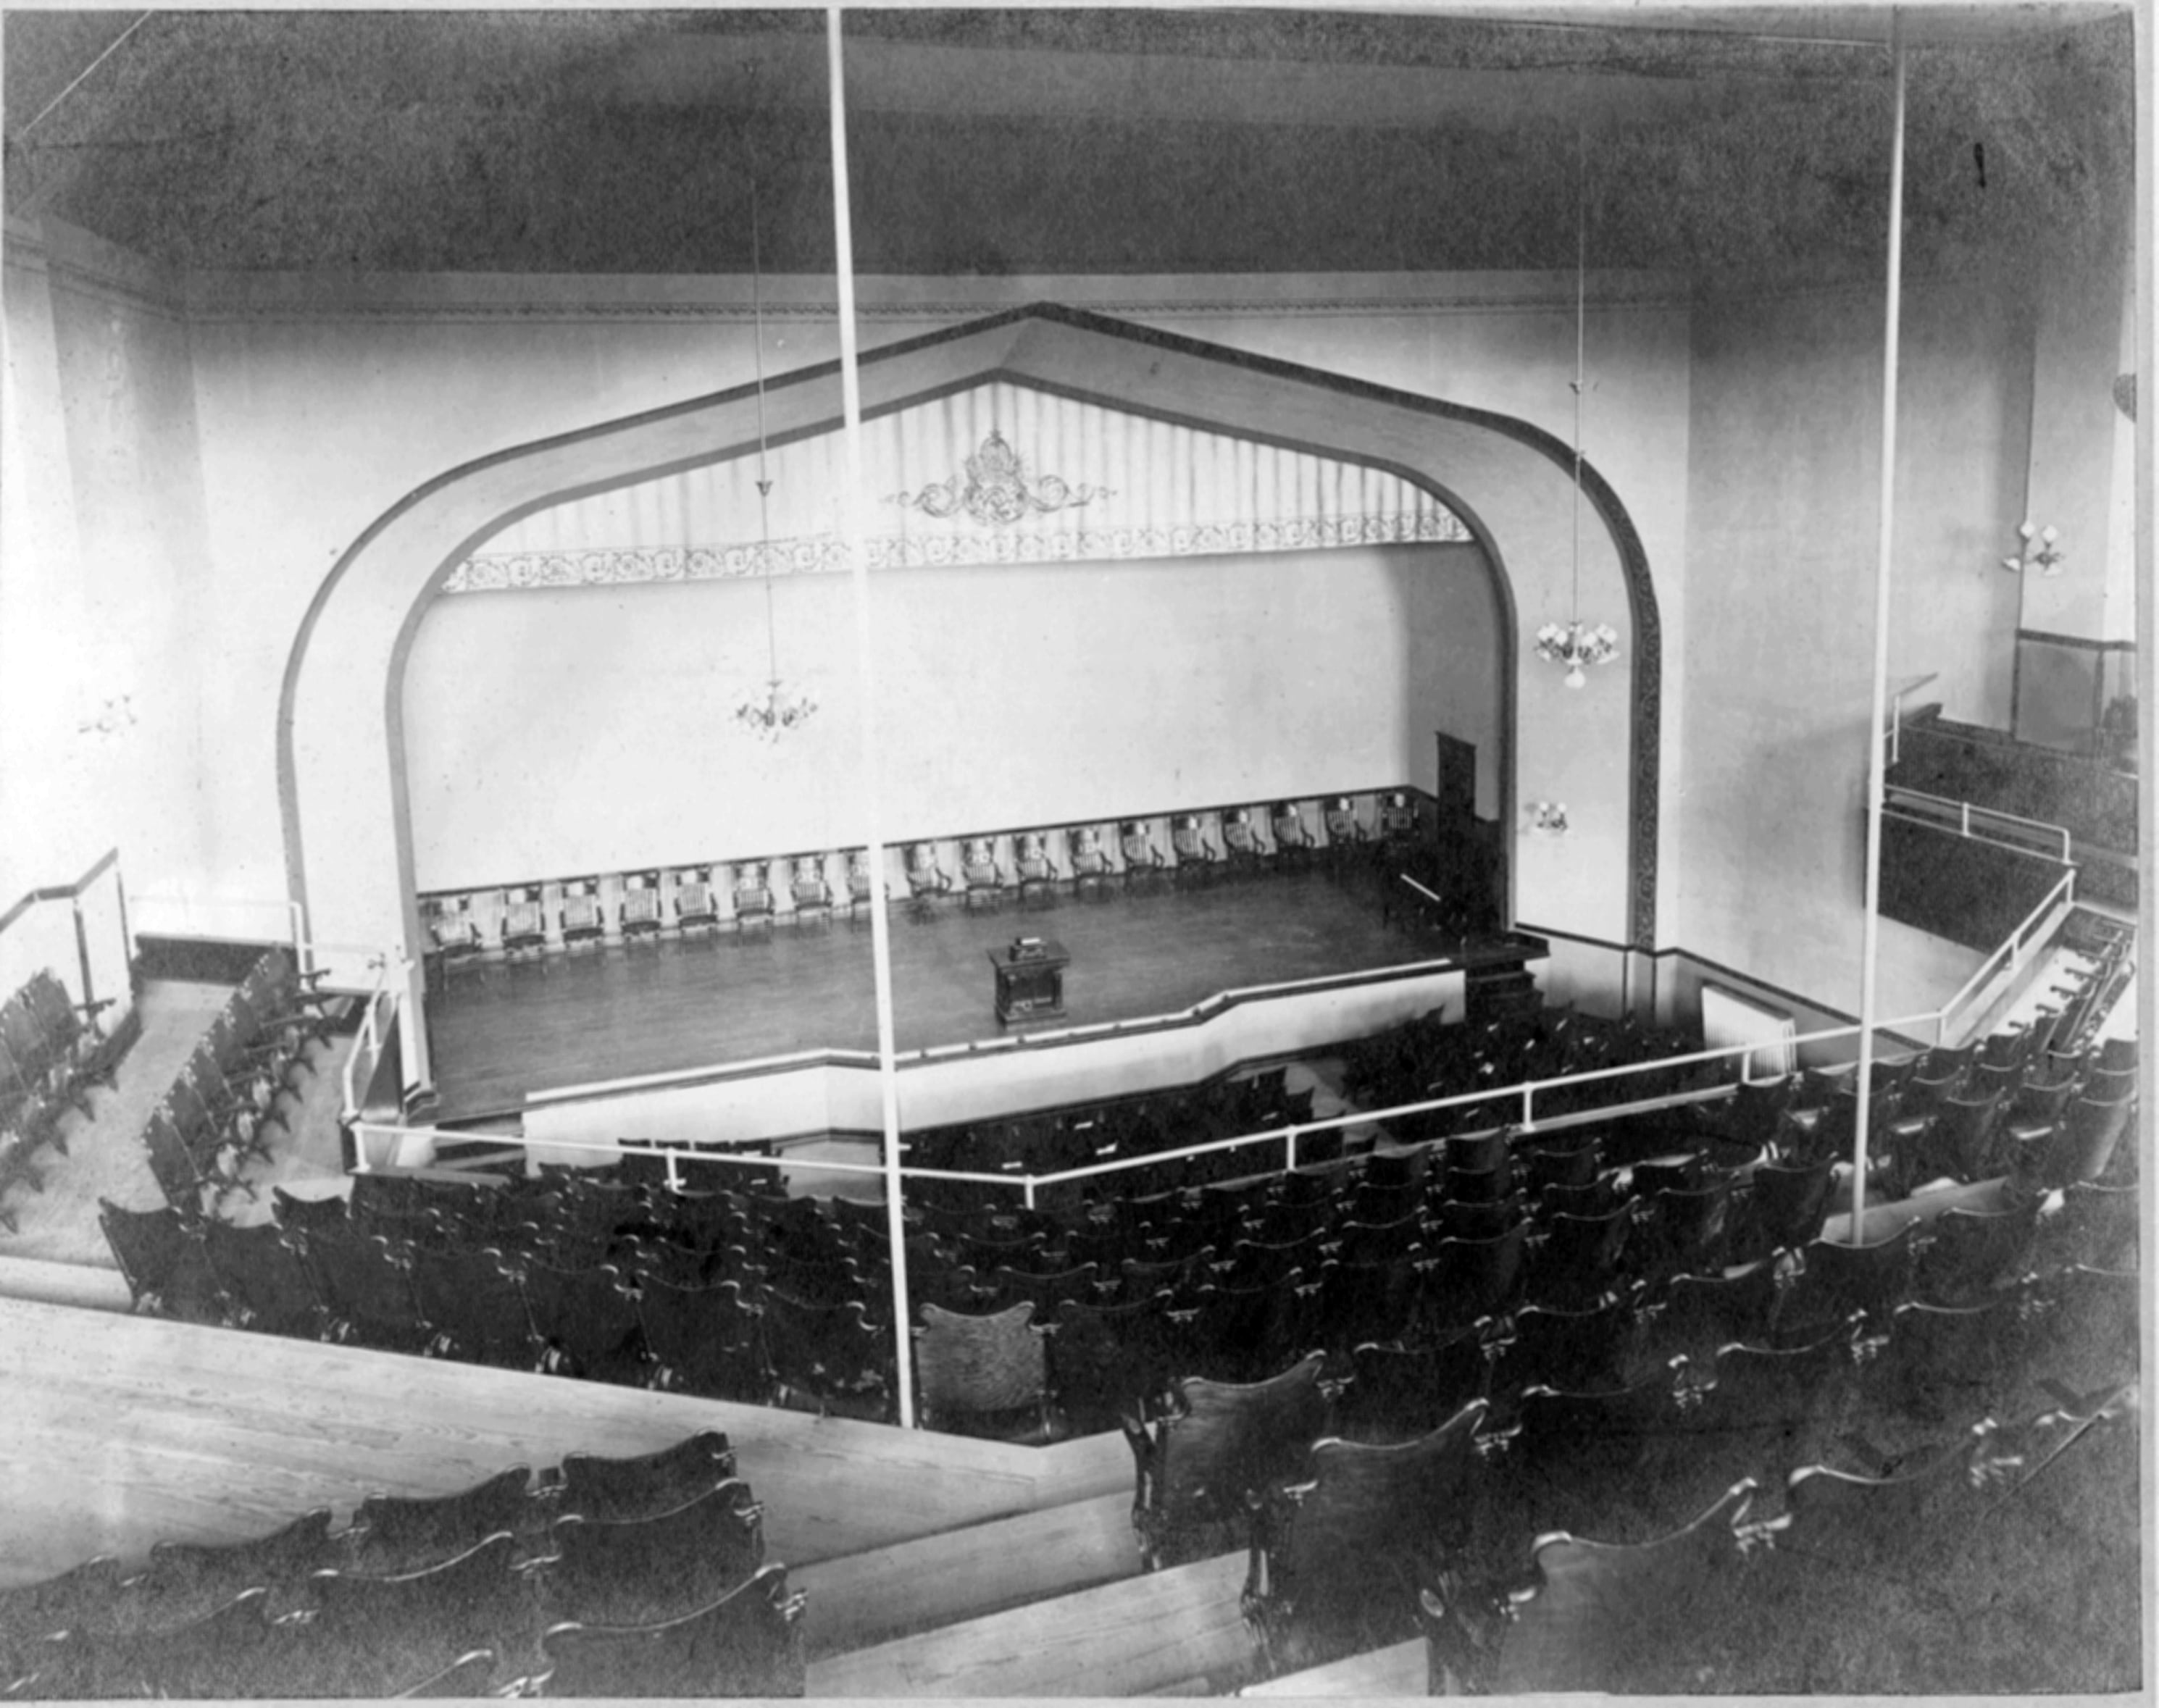 The 1907 expansion included the addition of a 1,000-seat auditorium used for student productions and other shows. It was shuttered in 1992 with the opening of the Joan C. Edwards Performing Arts Center.